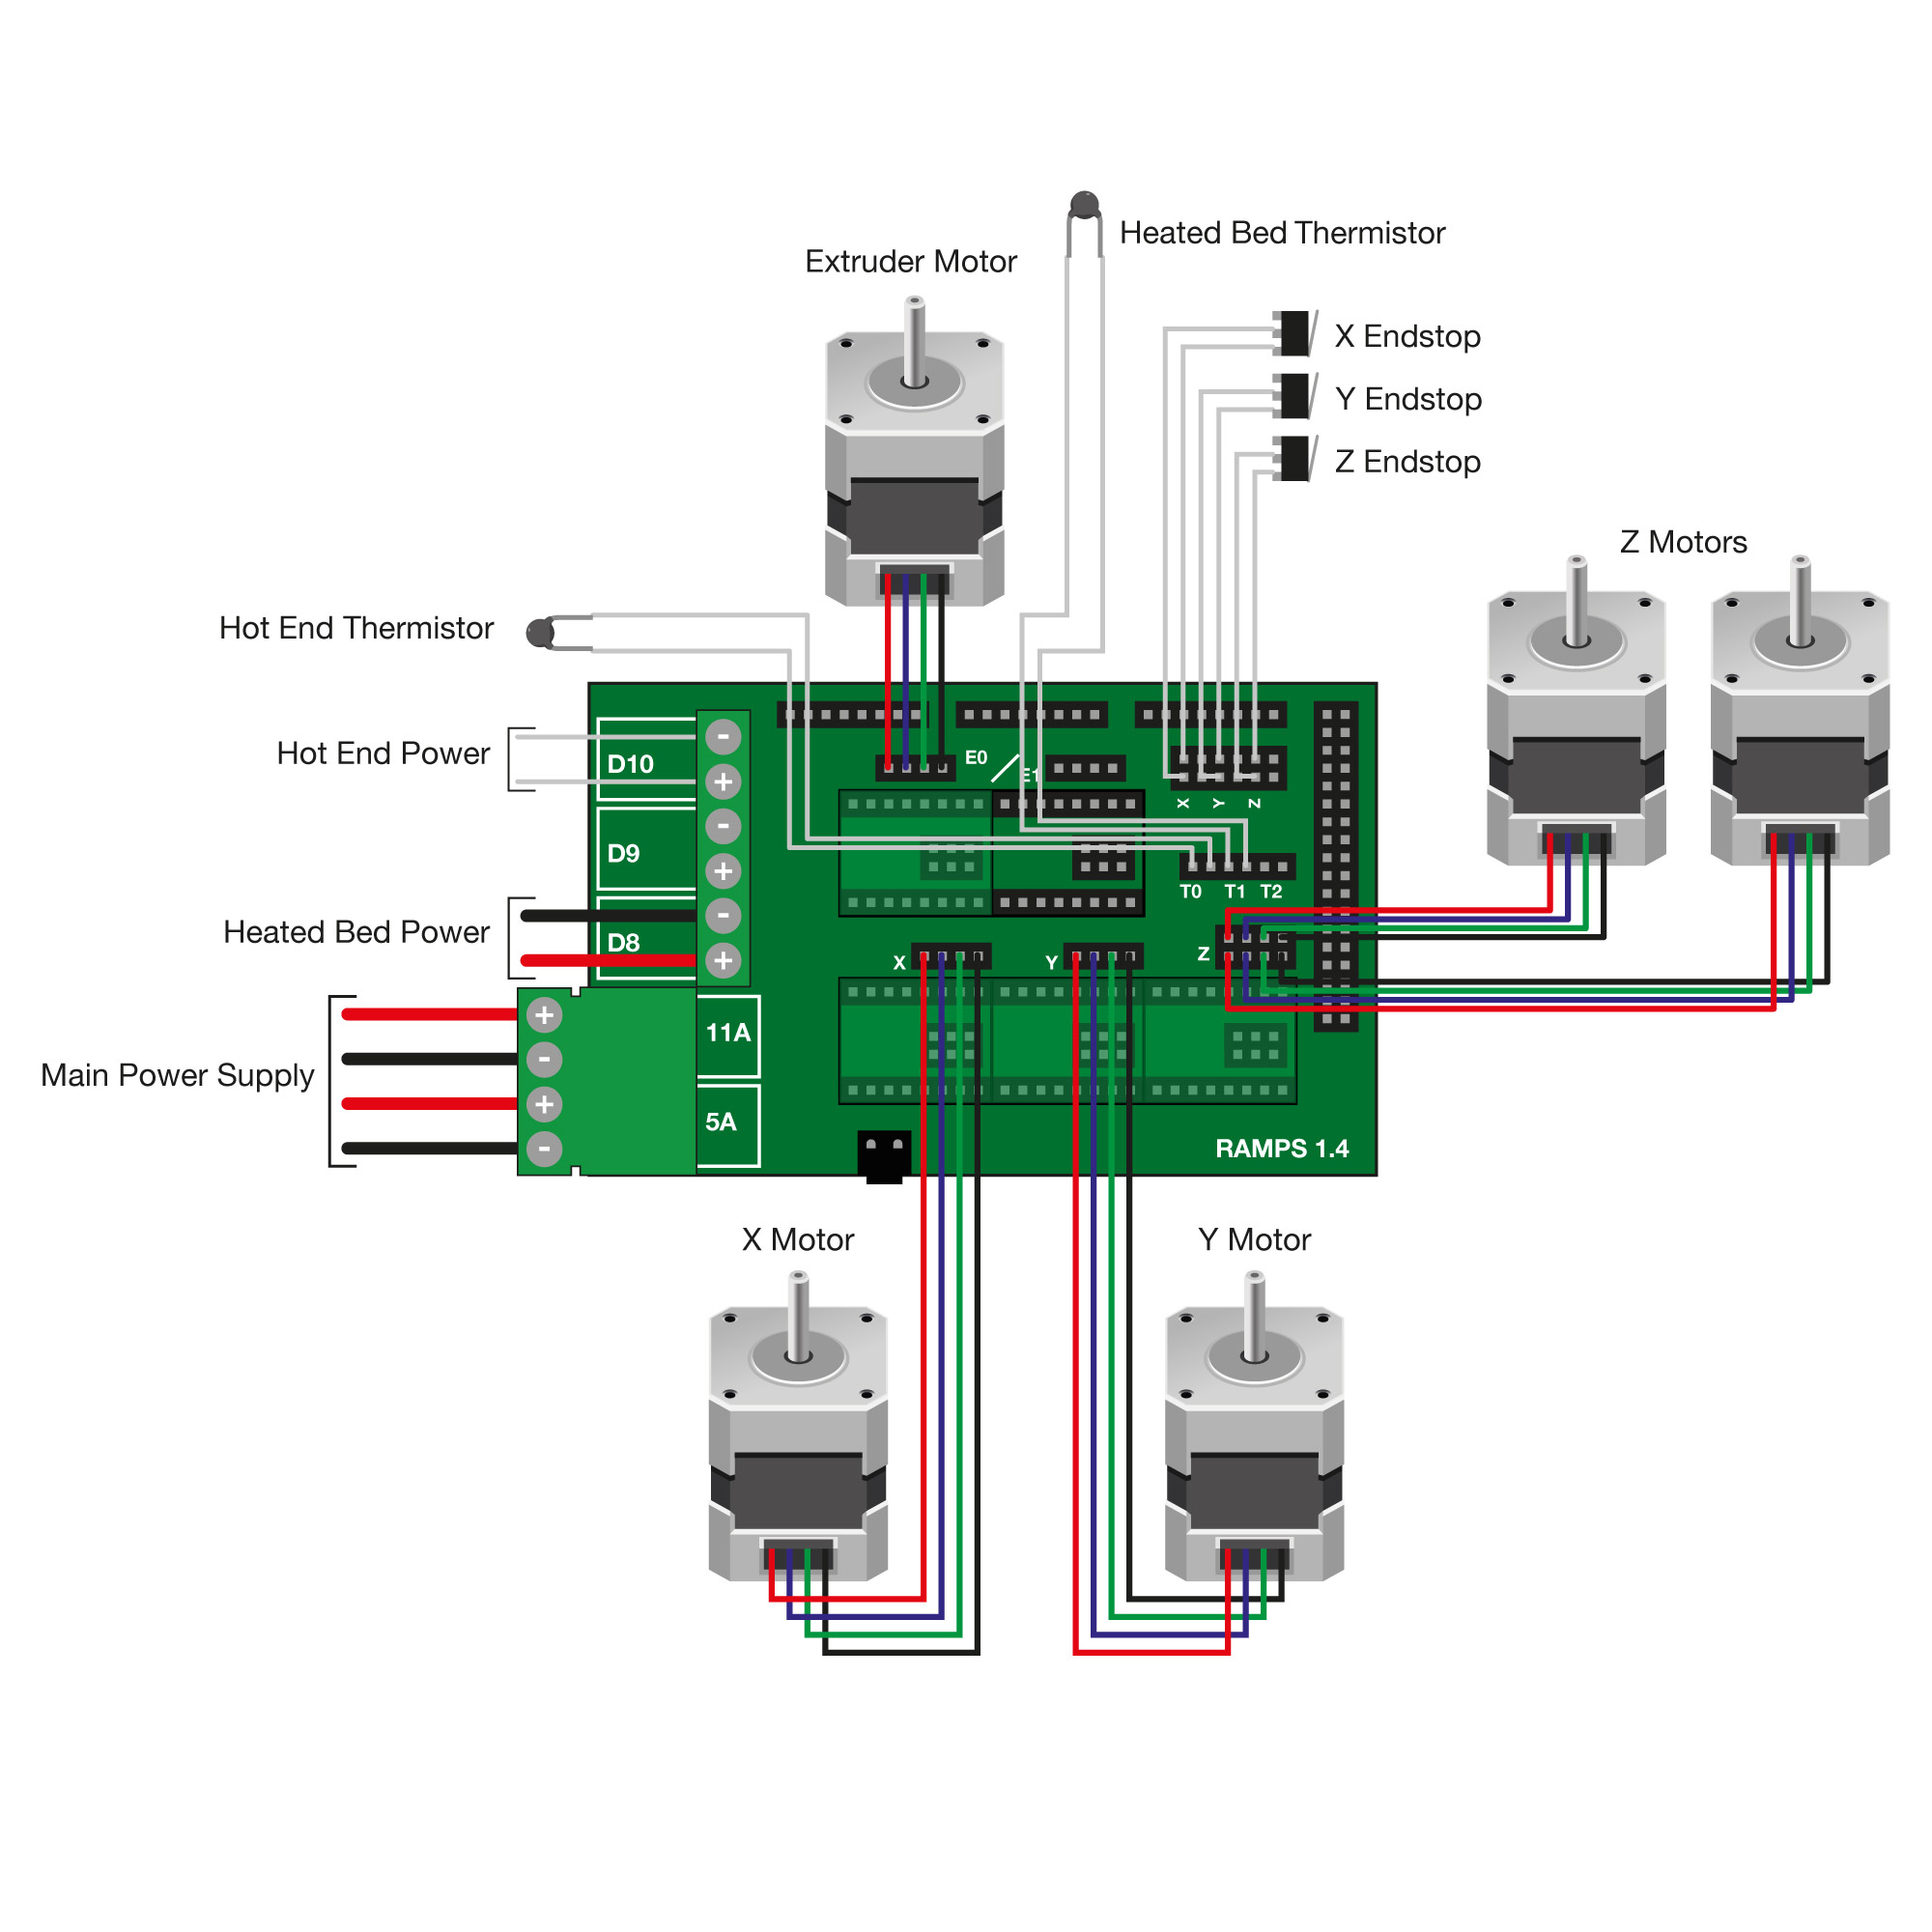 hight resolution of wiring ramps electronics for reprap prusa i3 3d printer asensar rh asensar com hoffman ramp wiring diagram ramps board wiring diagram